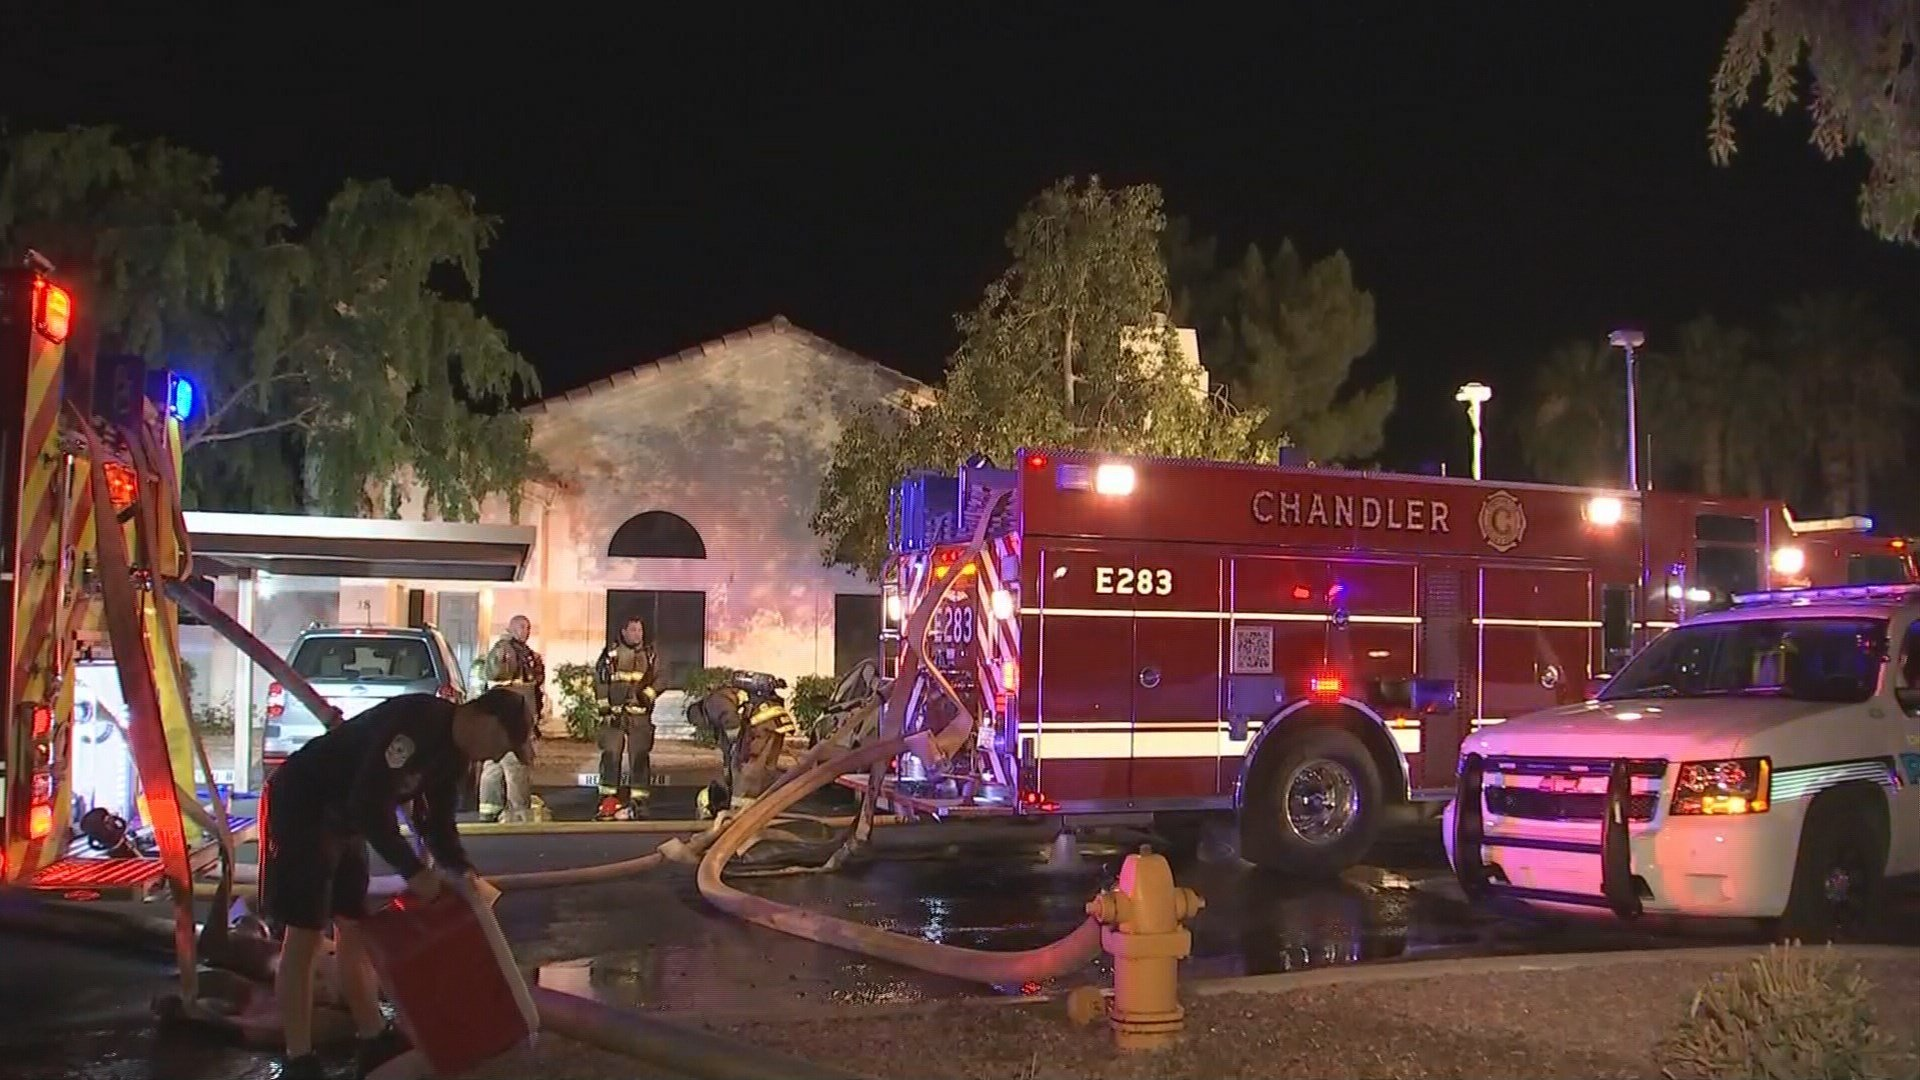 Crews contained the flames to one unit, but that unit was destroyed. (Source: KPHO/KTVK)